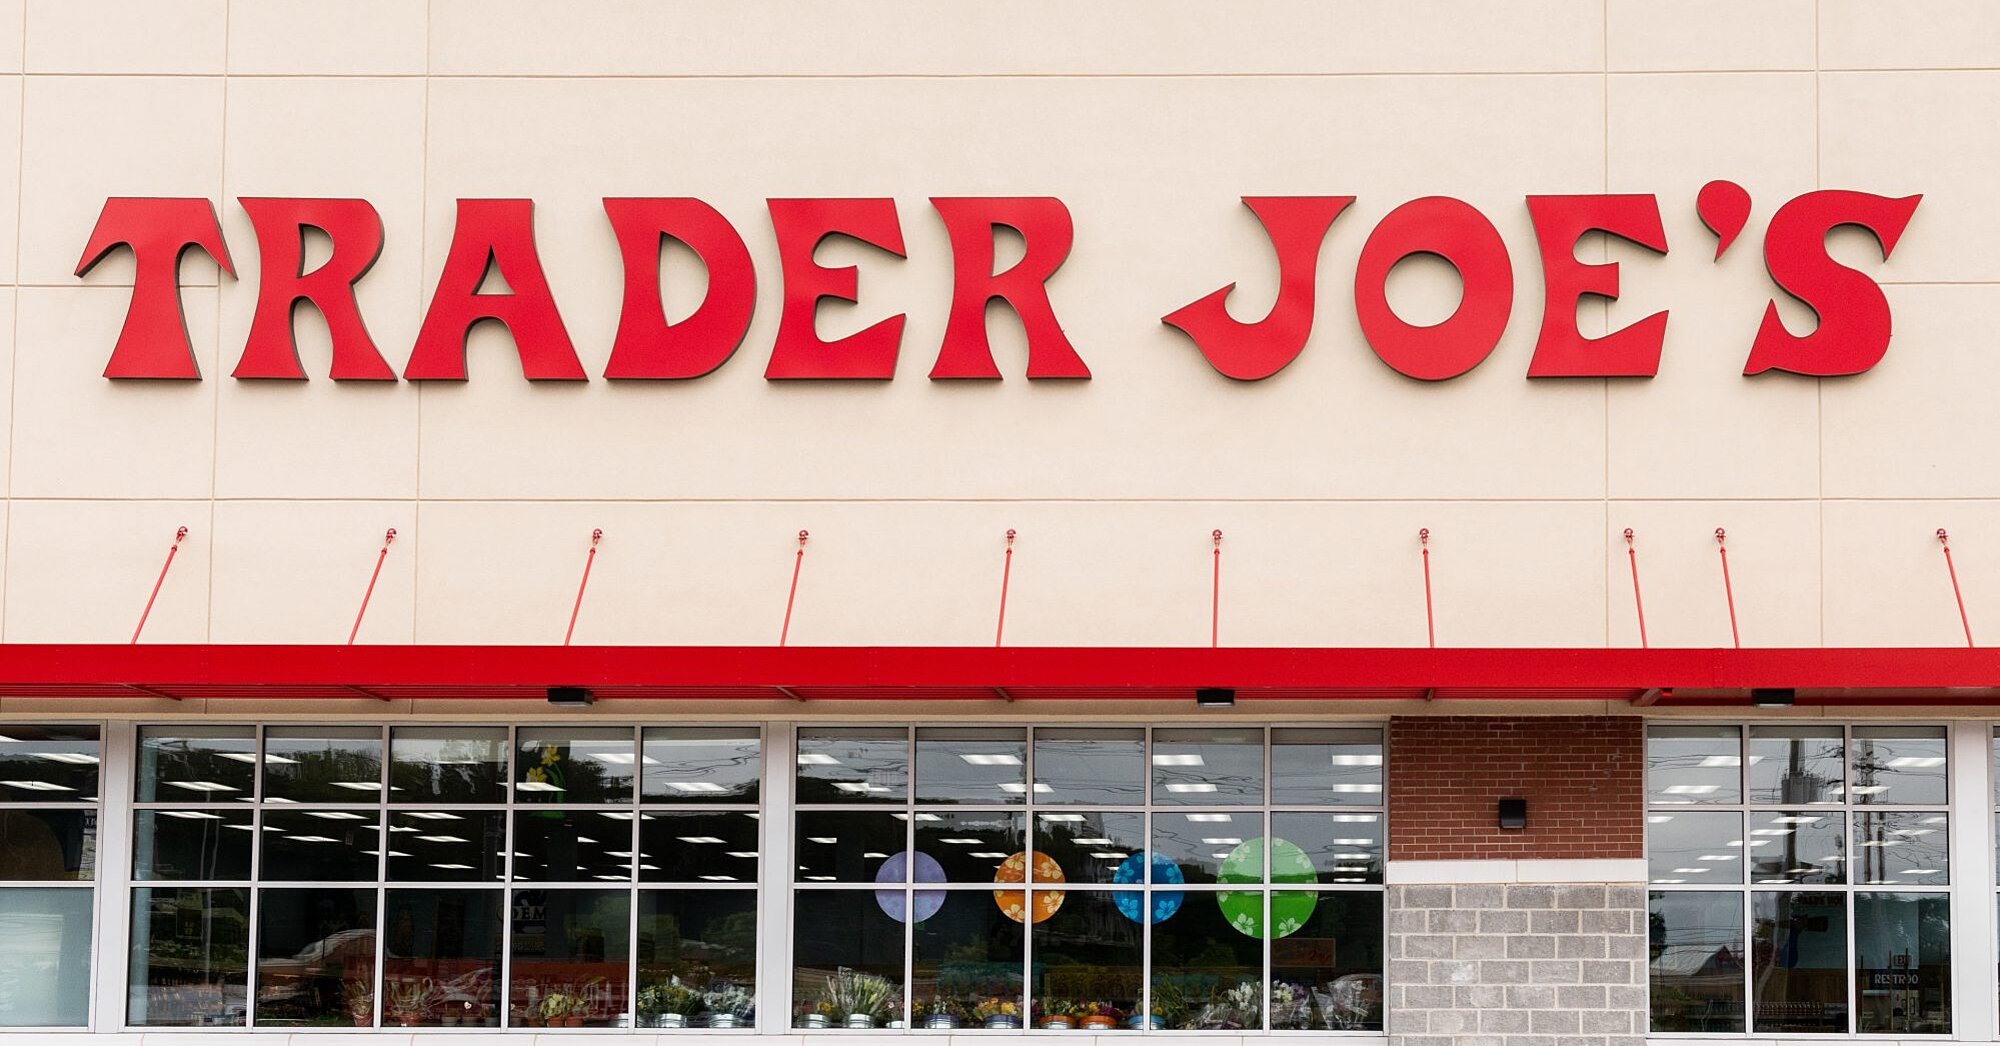 9 New Spring Trader Joe's Products You Need to Get Your (Sanitized) Hands on Immediately